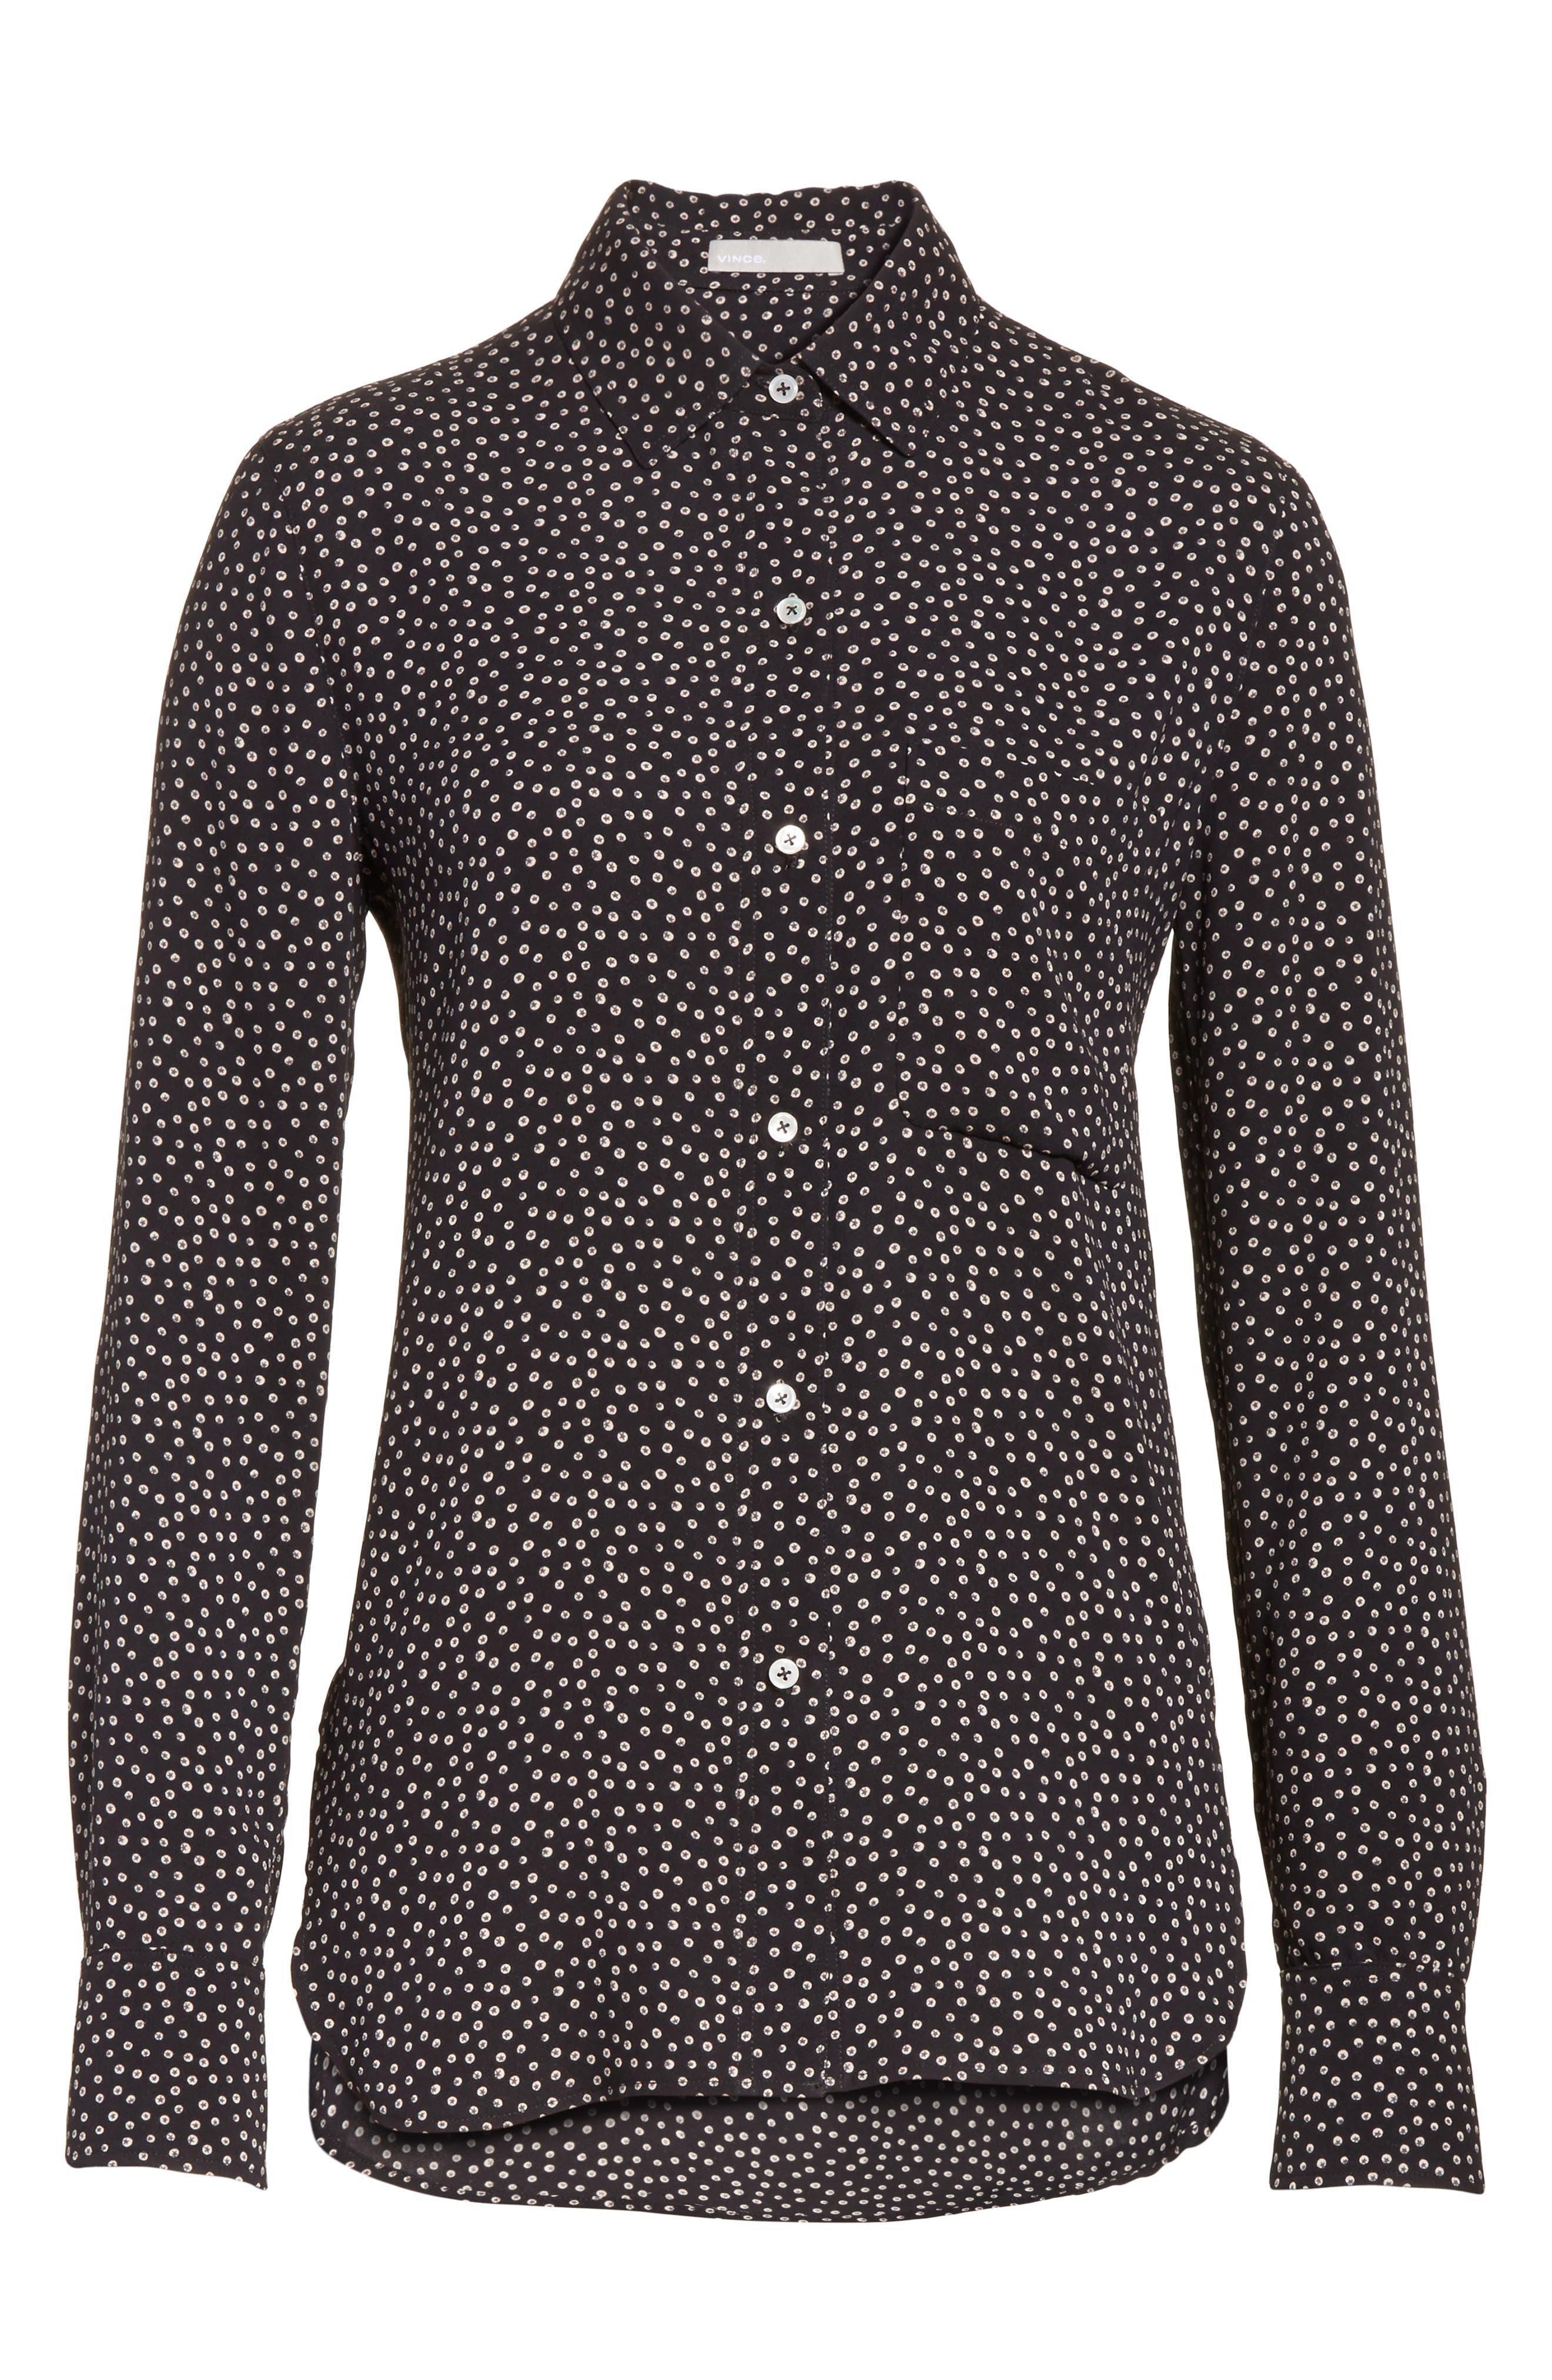 Celestial Polka Dot Slim Shirt,                             Alternate thumbnail 6, color,                             005